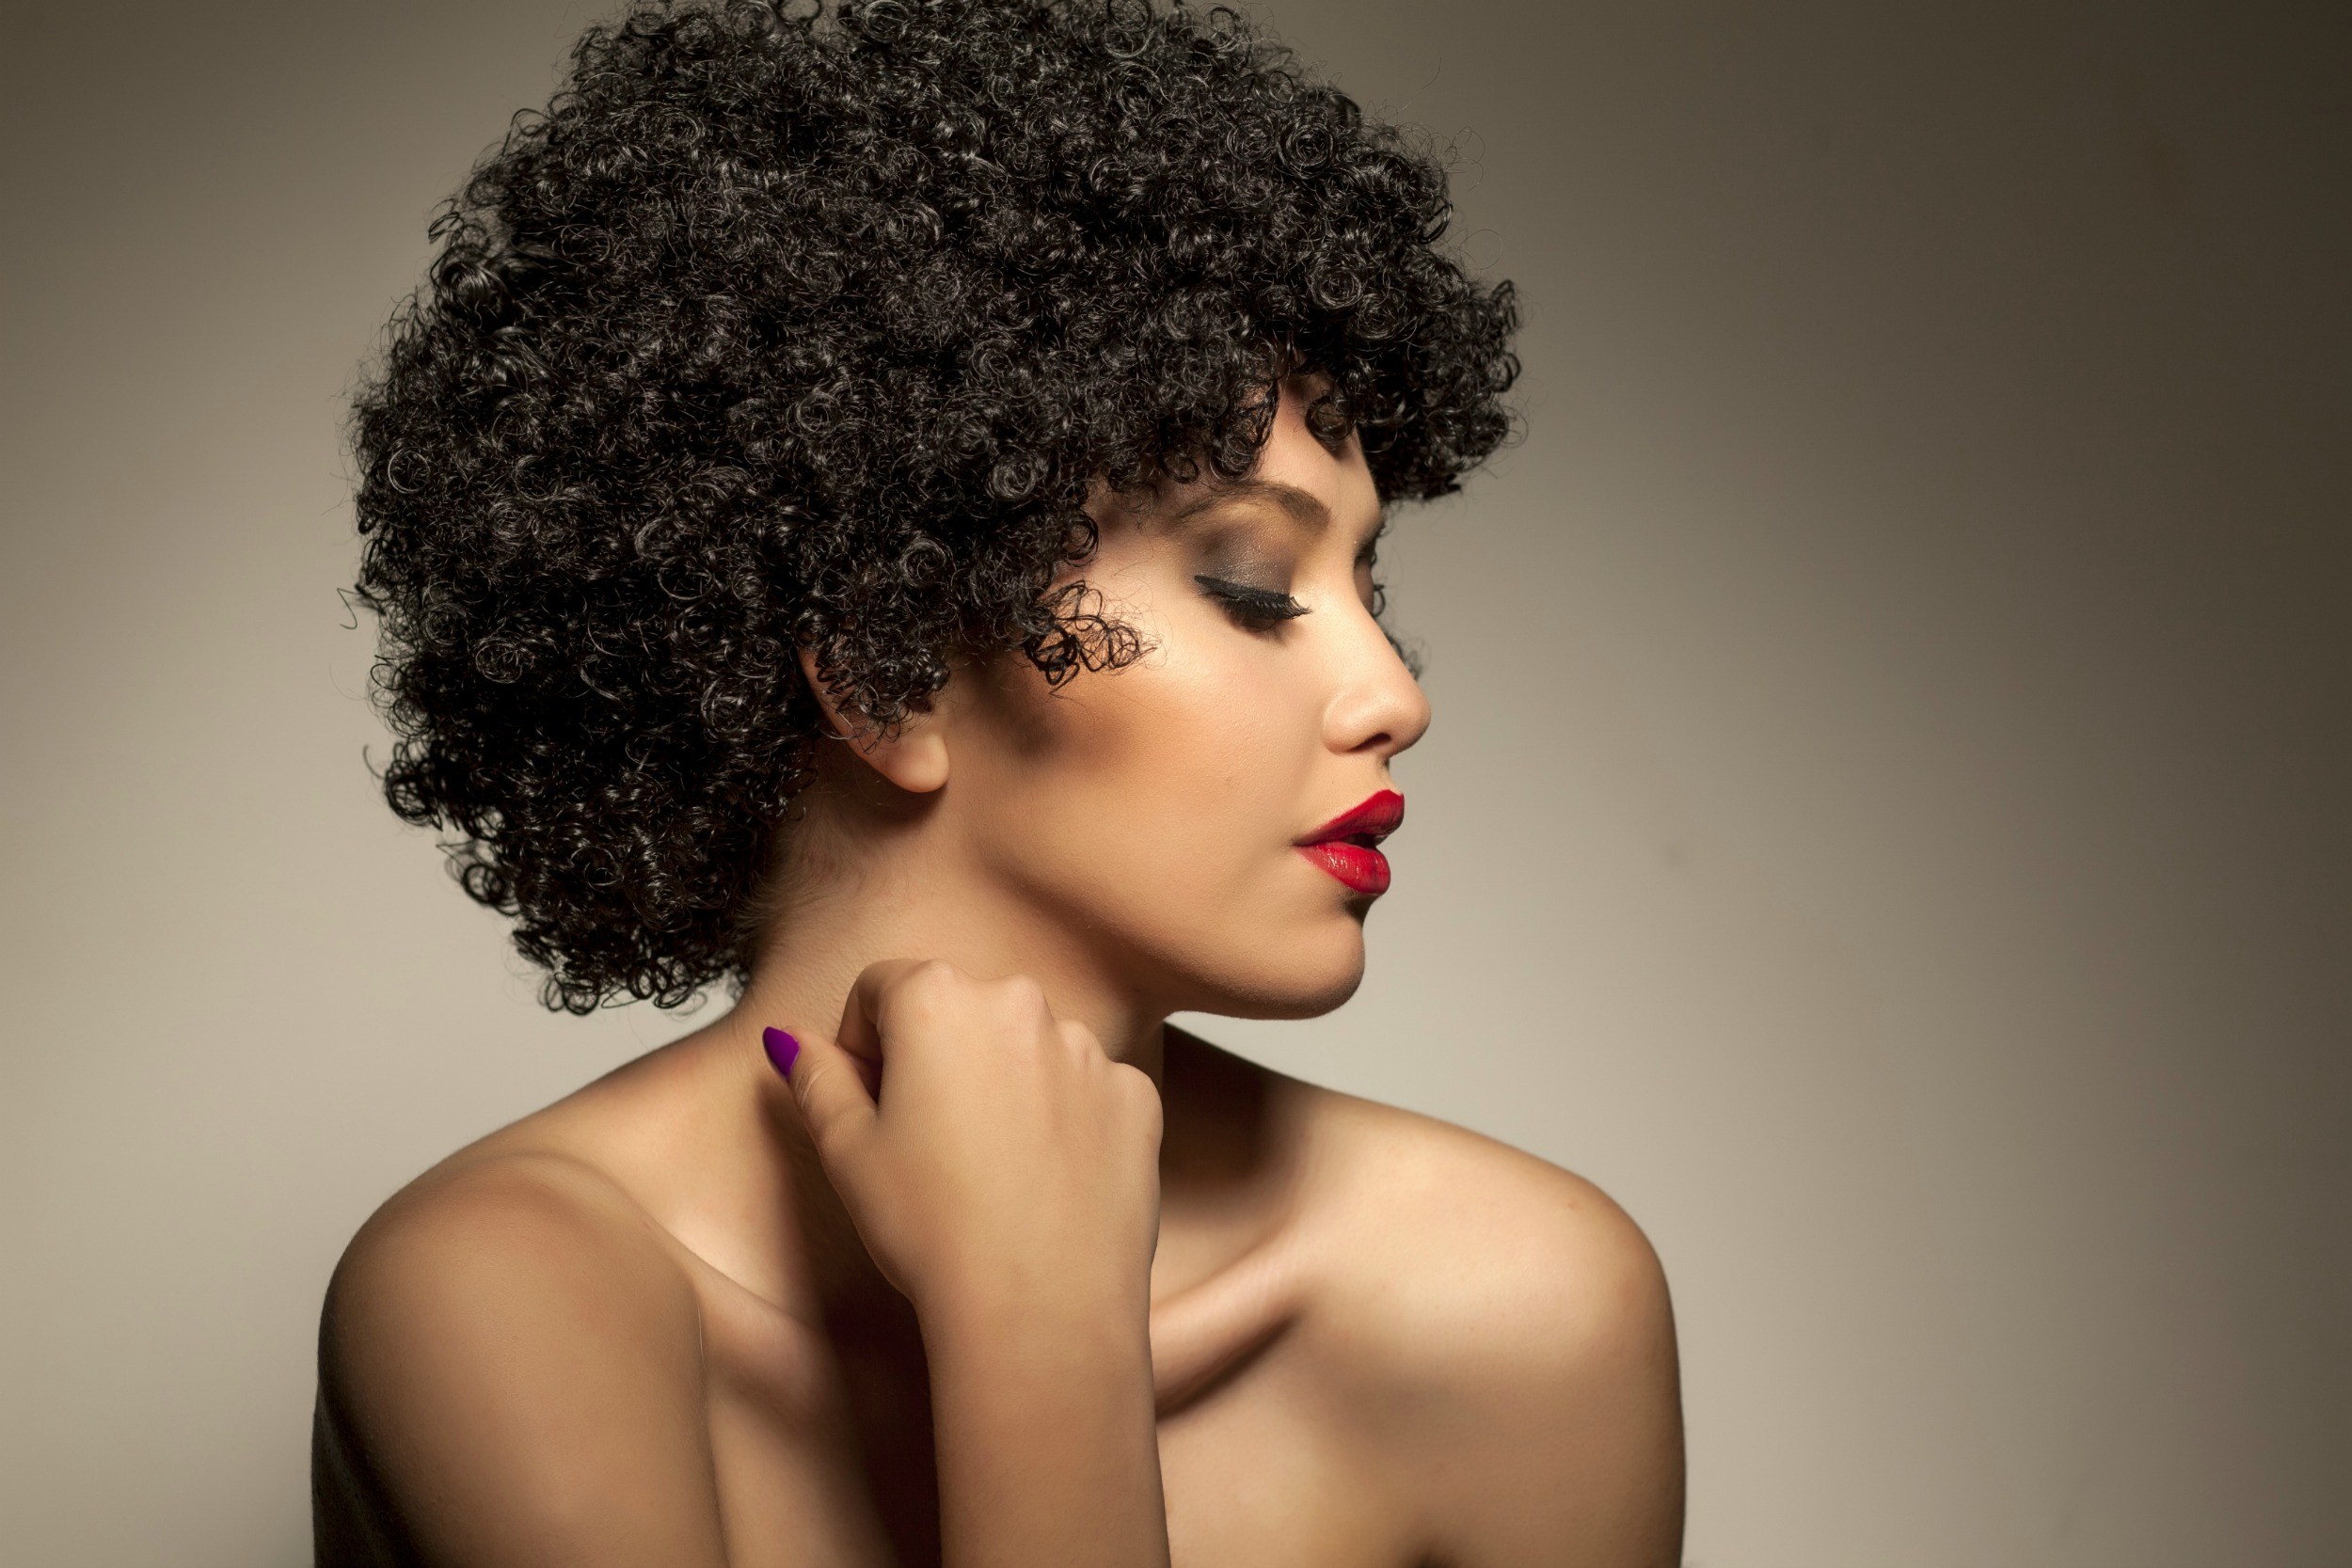 Choosing Best Shampoo For Natural Hair